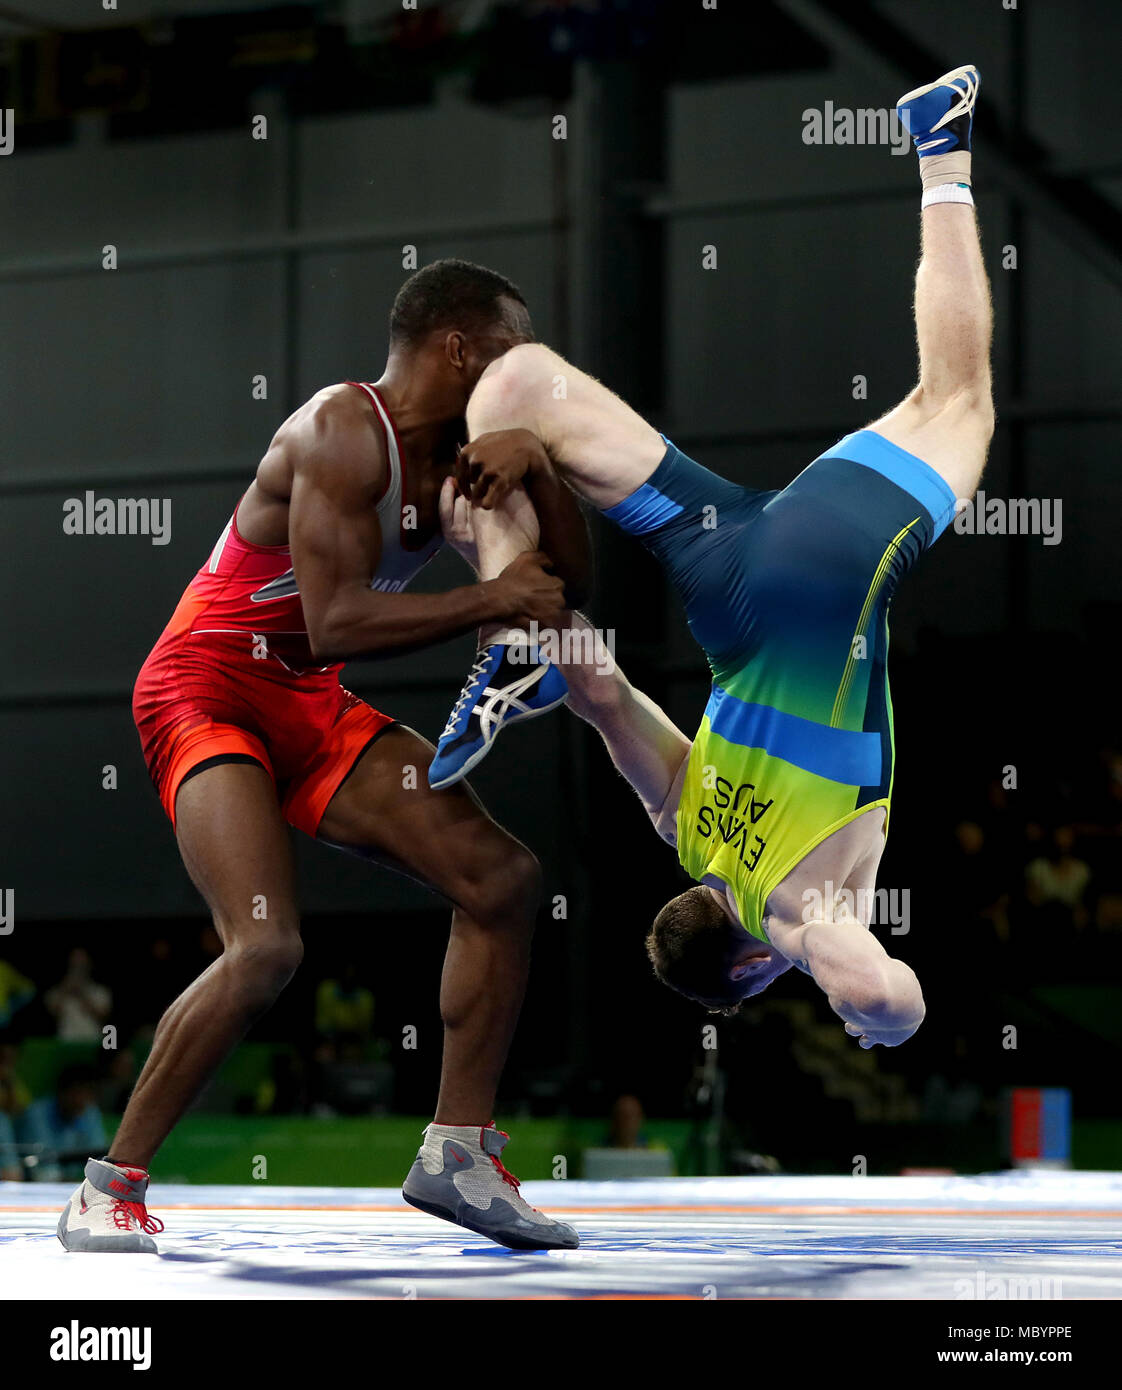 b4572b6d18 Canada's Jevon Balfour (left) and Australia's Connor Evans (right) in  action during the Men's Freestyle 74 kg Bronze at the Carrara Sports Arena  during day ...